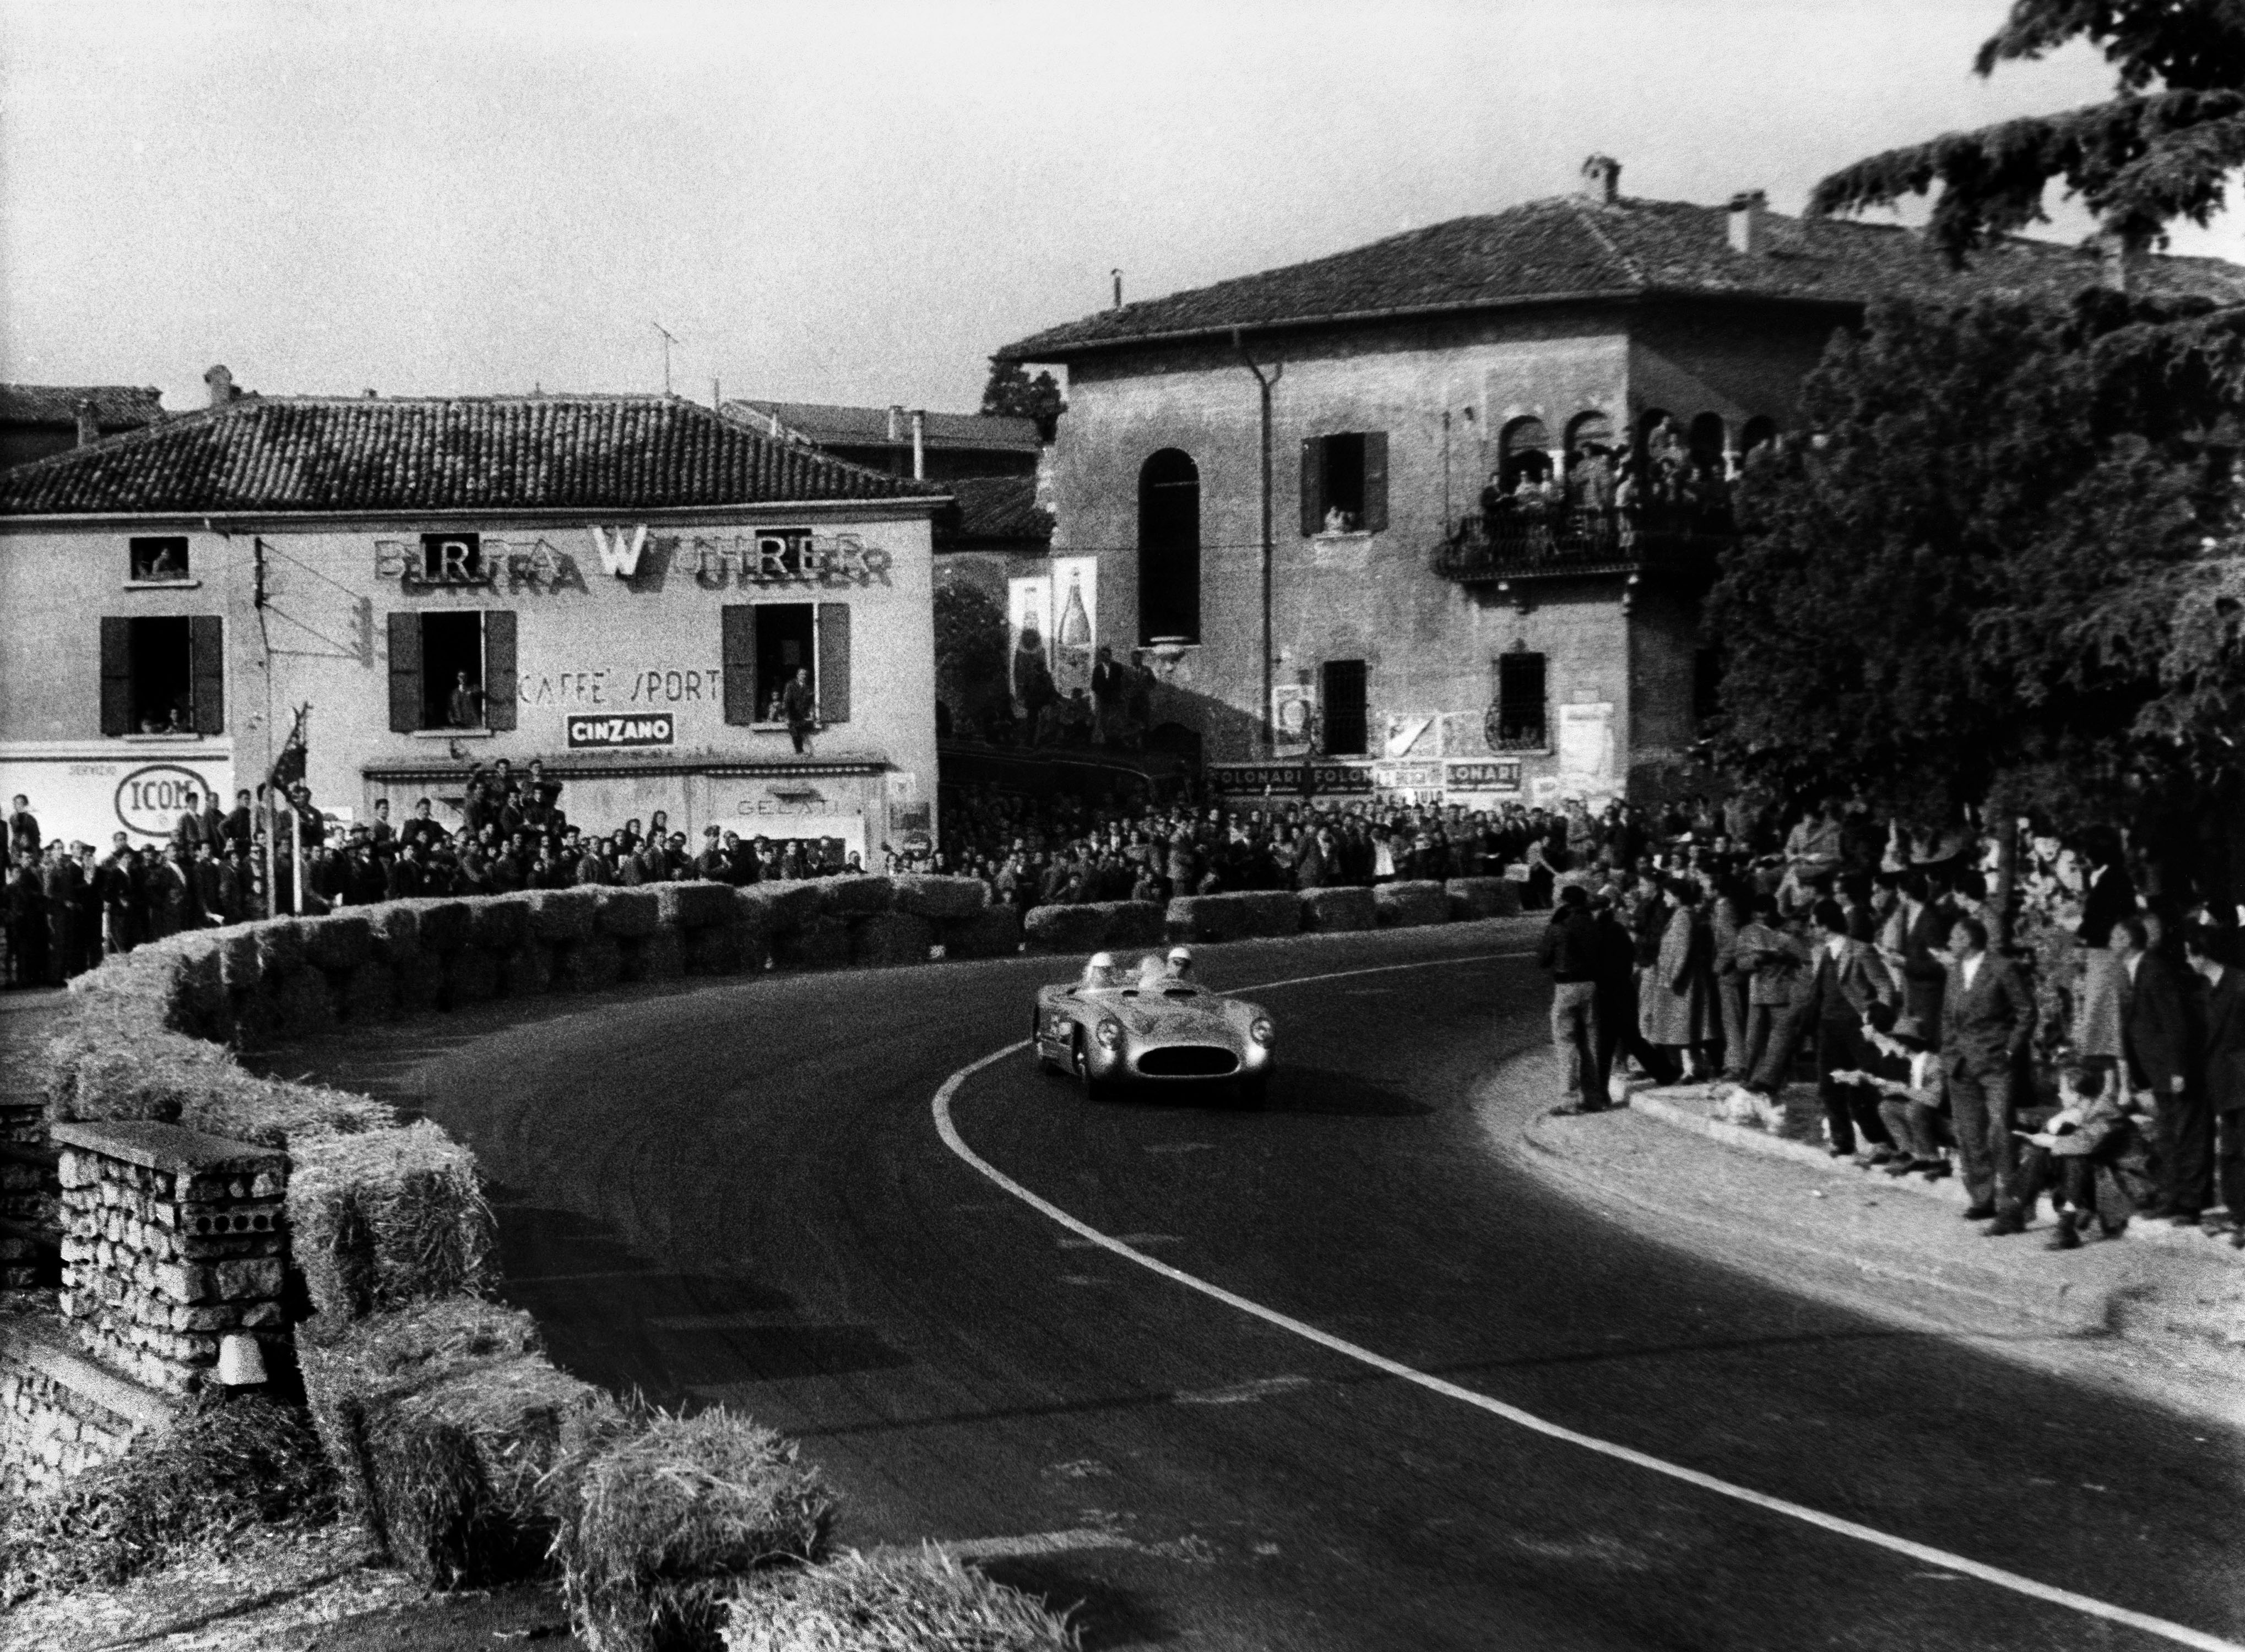 Stirling Moss and Denis Jenkinson race through another Italian town 1955 Mille Miglia Italy